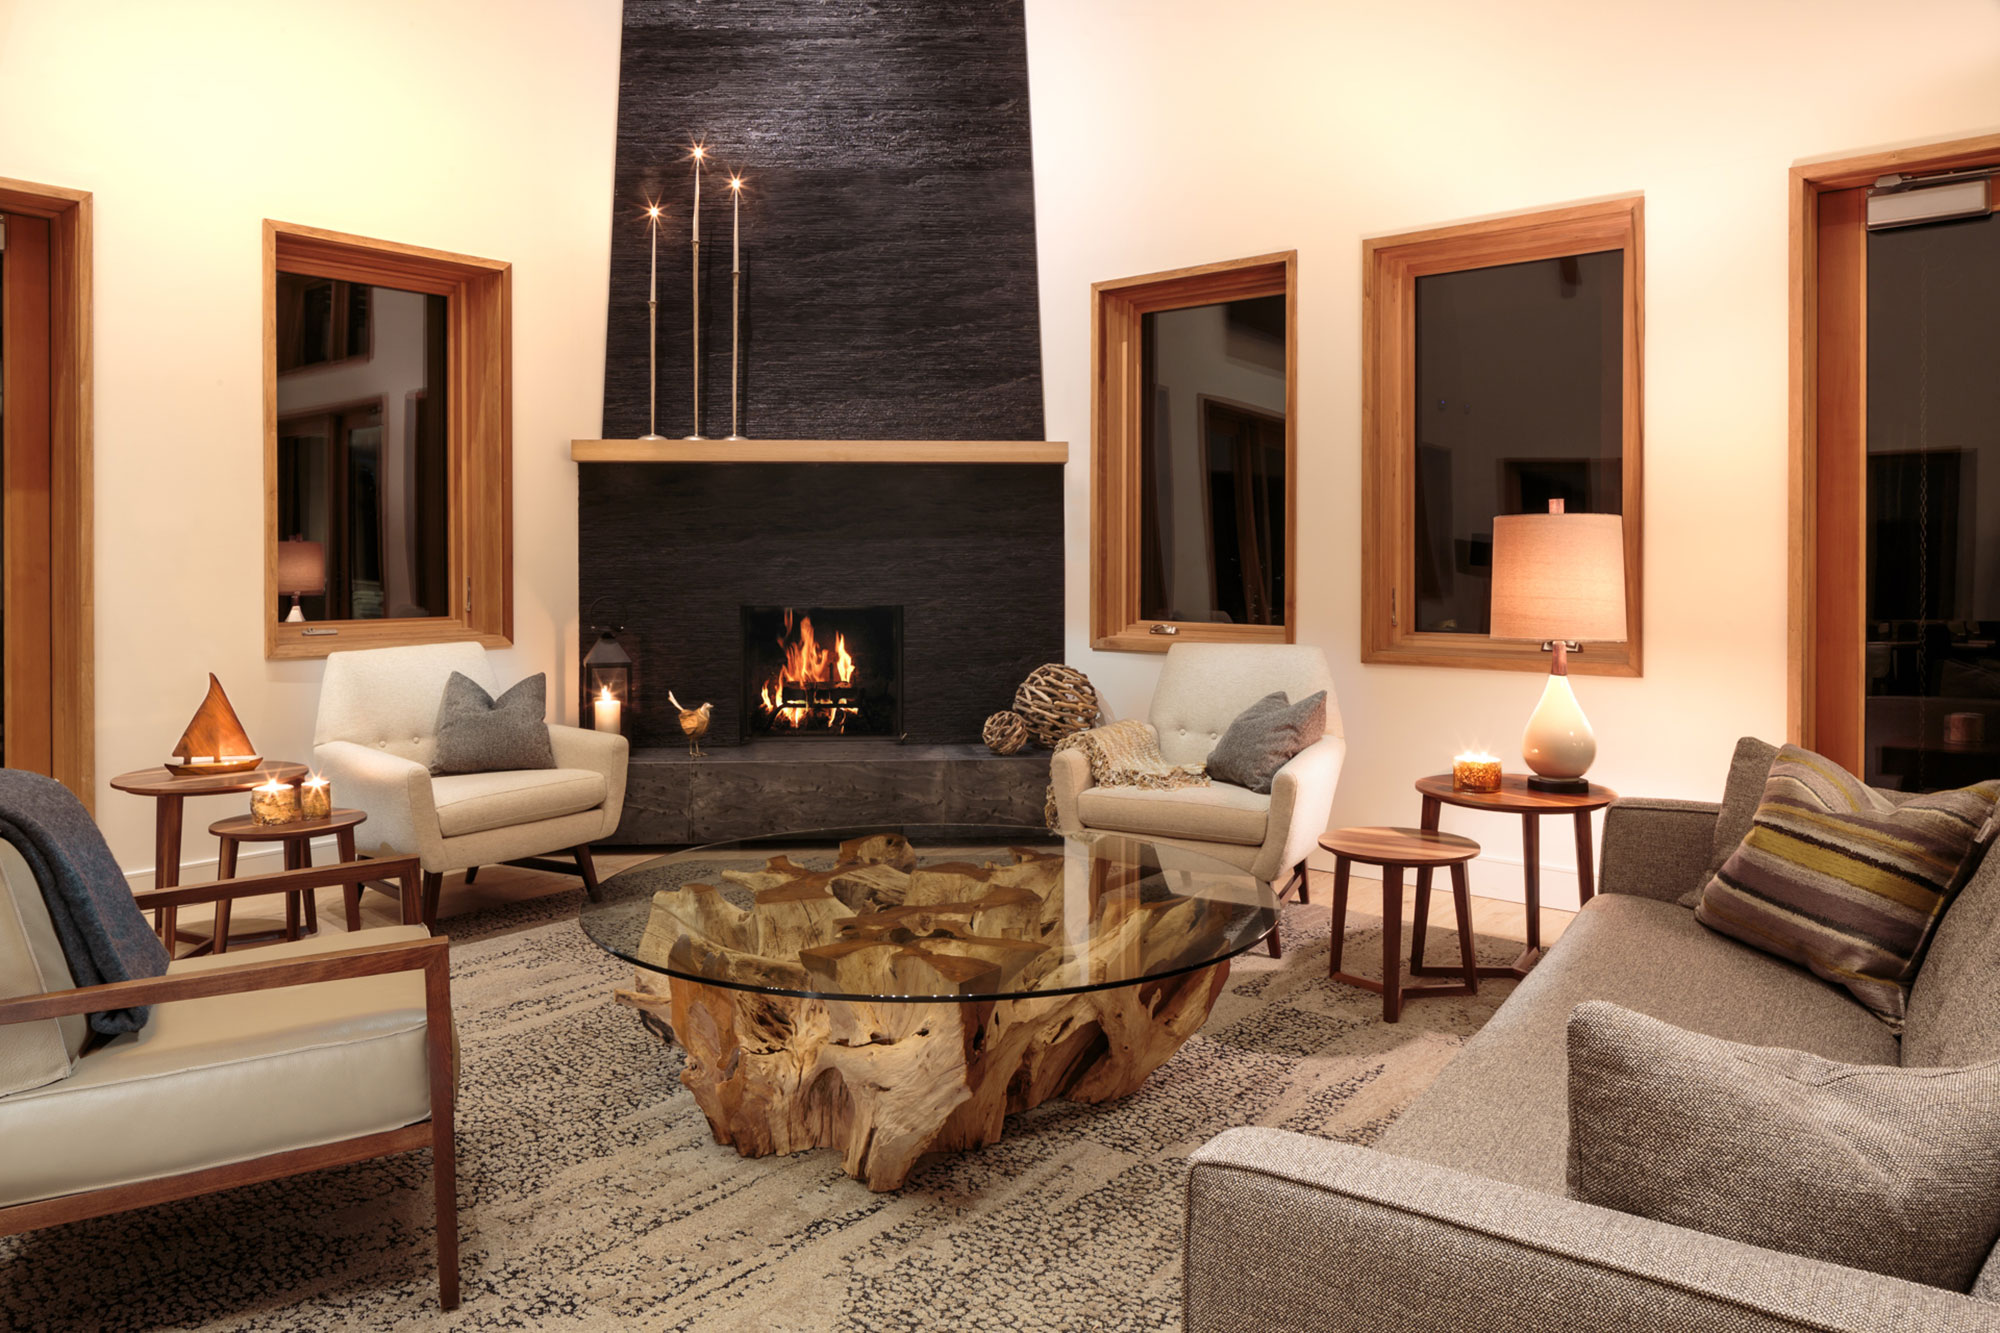 interior-design-welcome-centre-fireplace.jpg